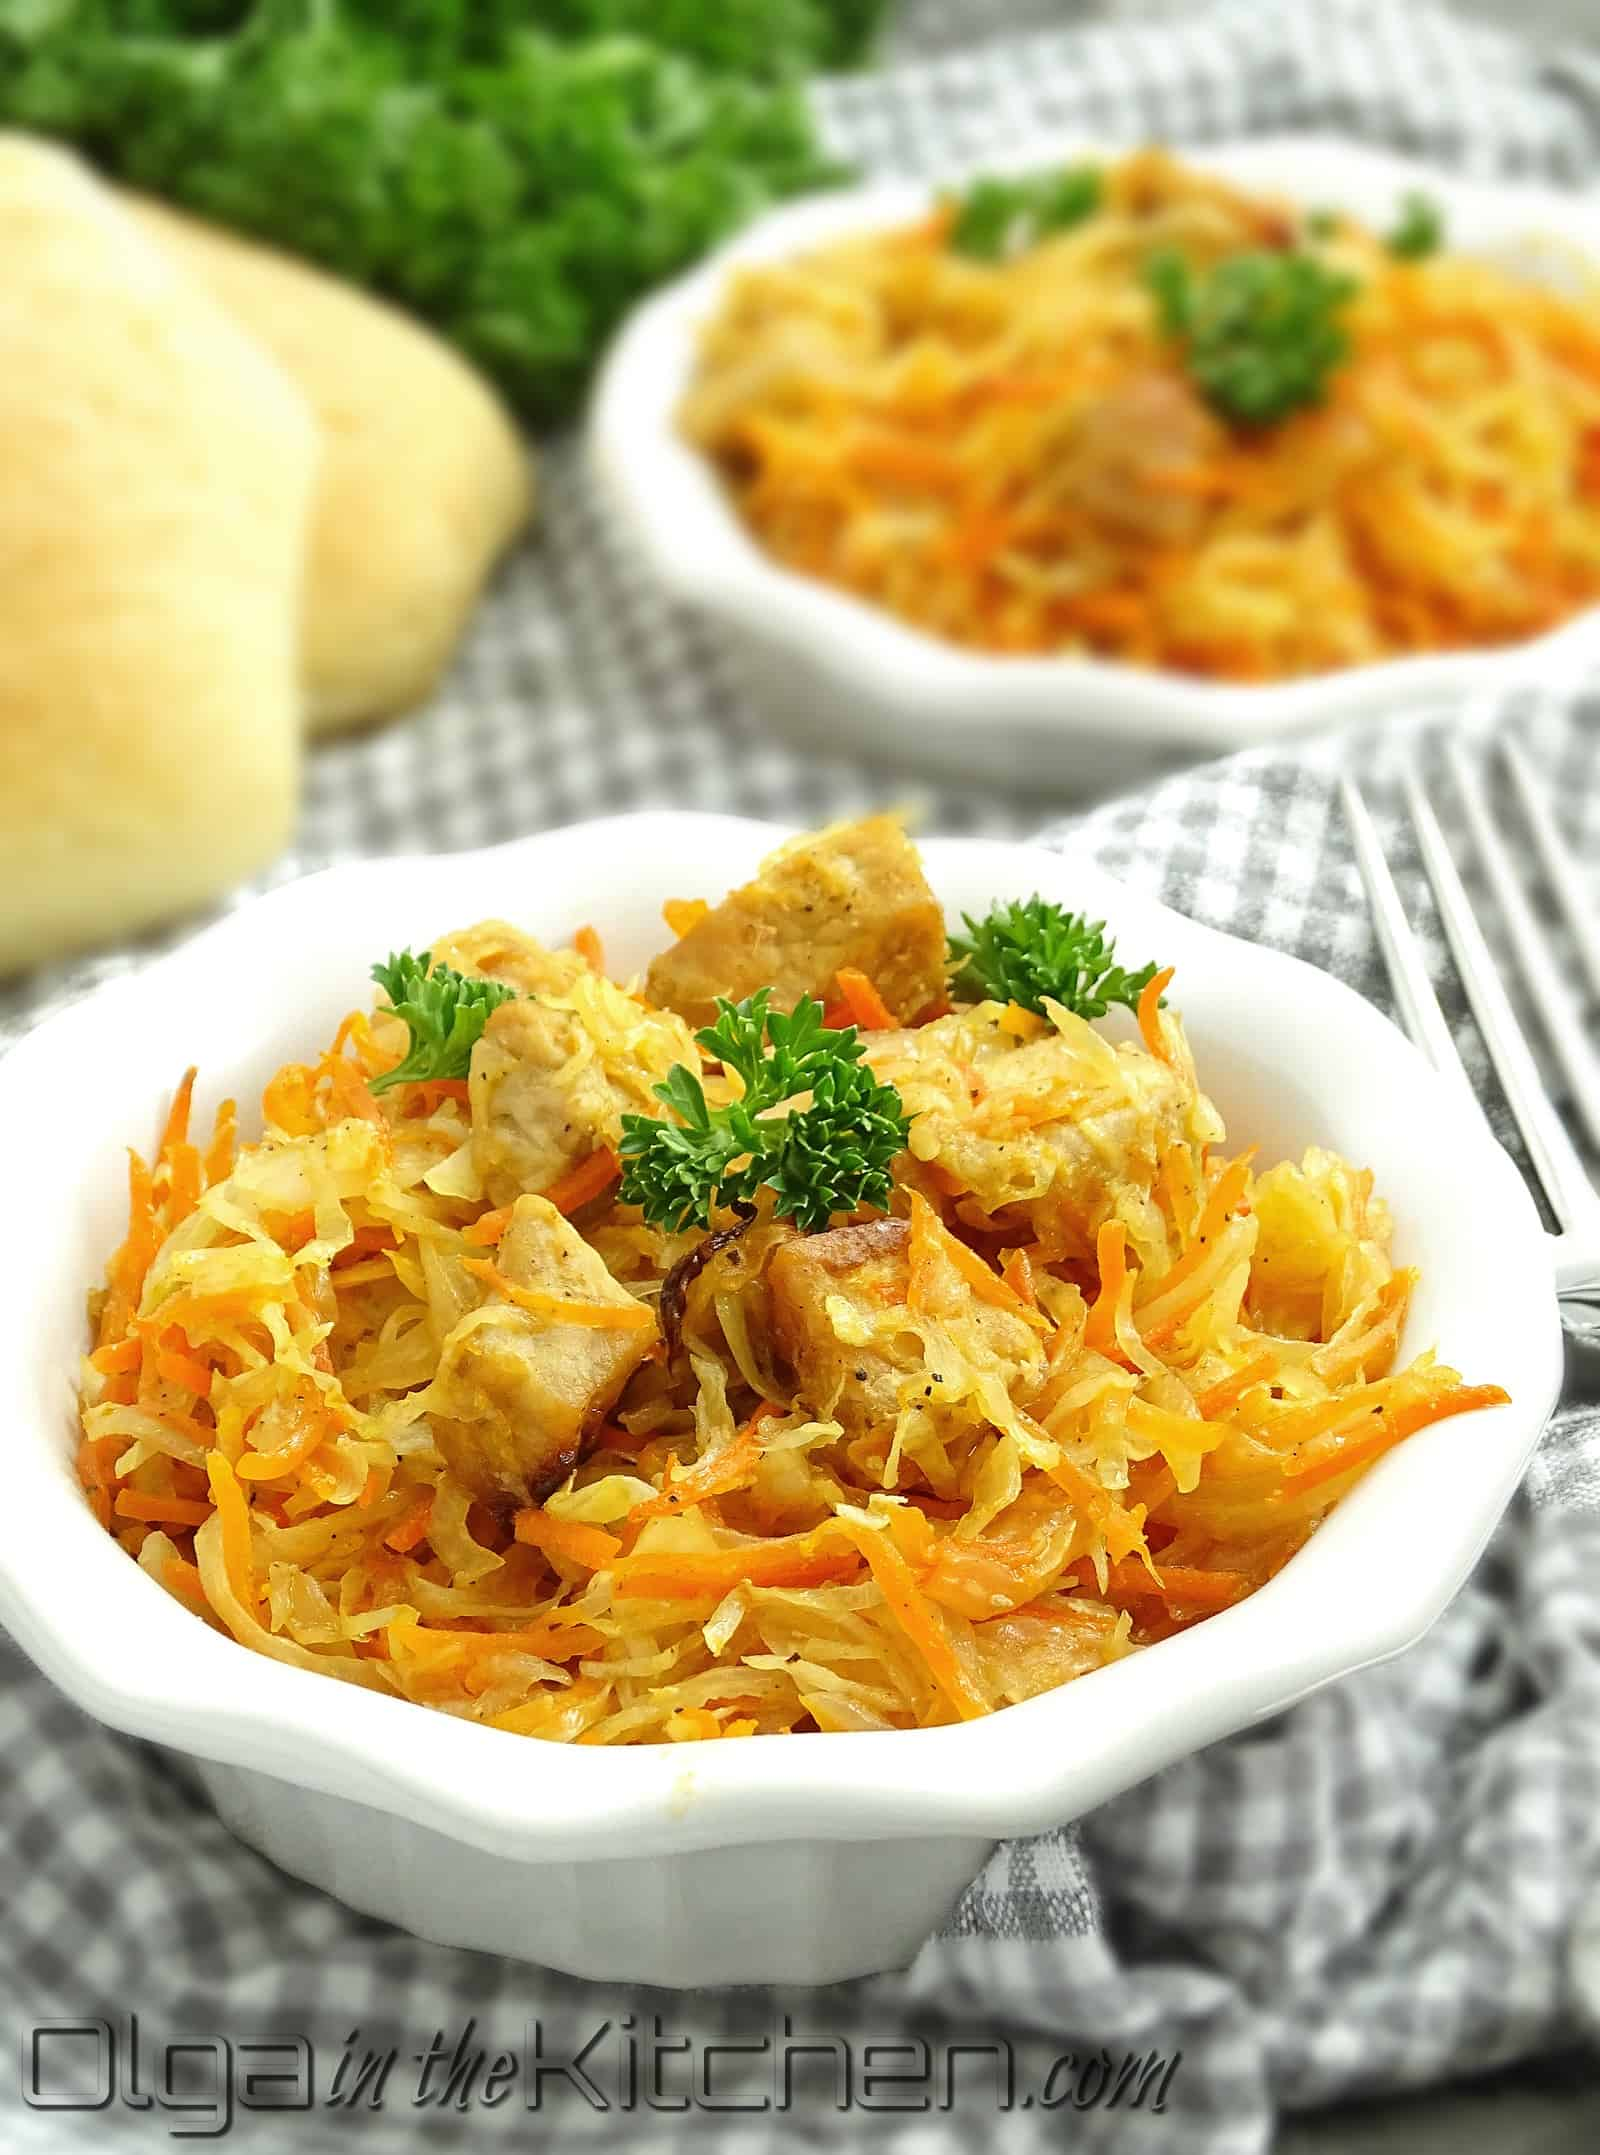 Ukrainian Oven Roasted Cabbage with pork: simple, comfortable, classic, yet juicy, sweet and sour. | olgainthekitchen.com